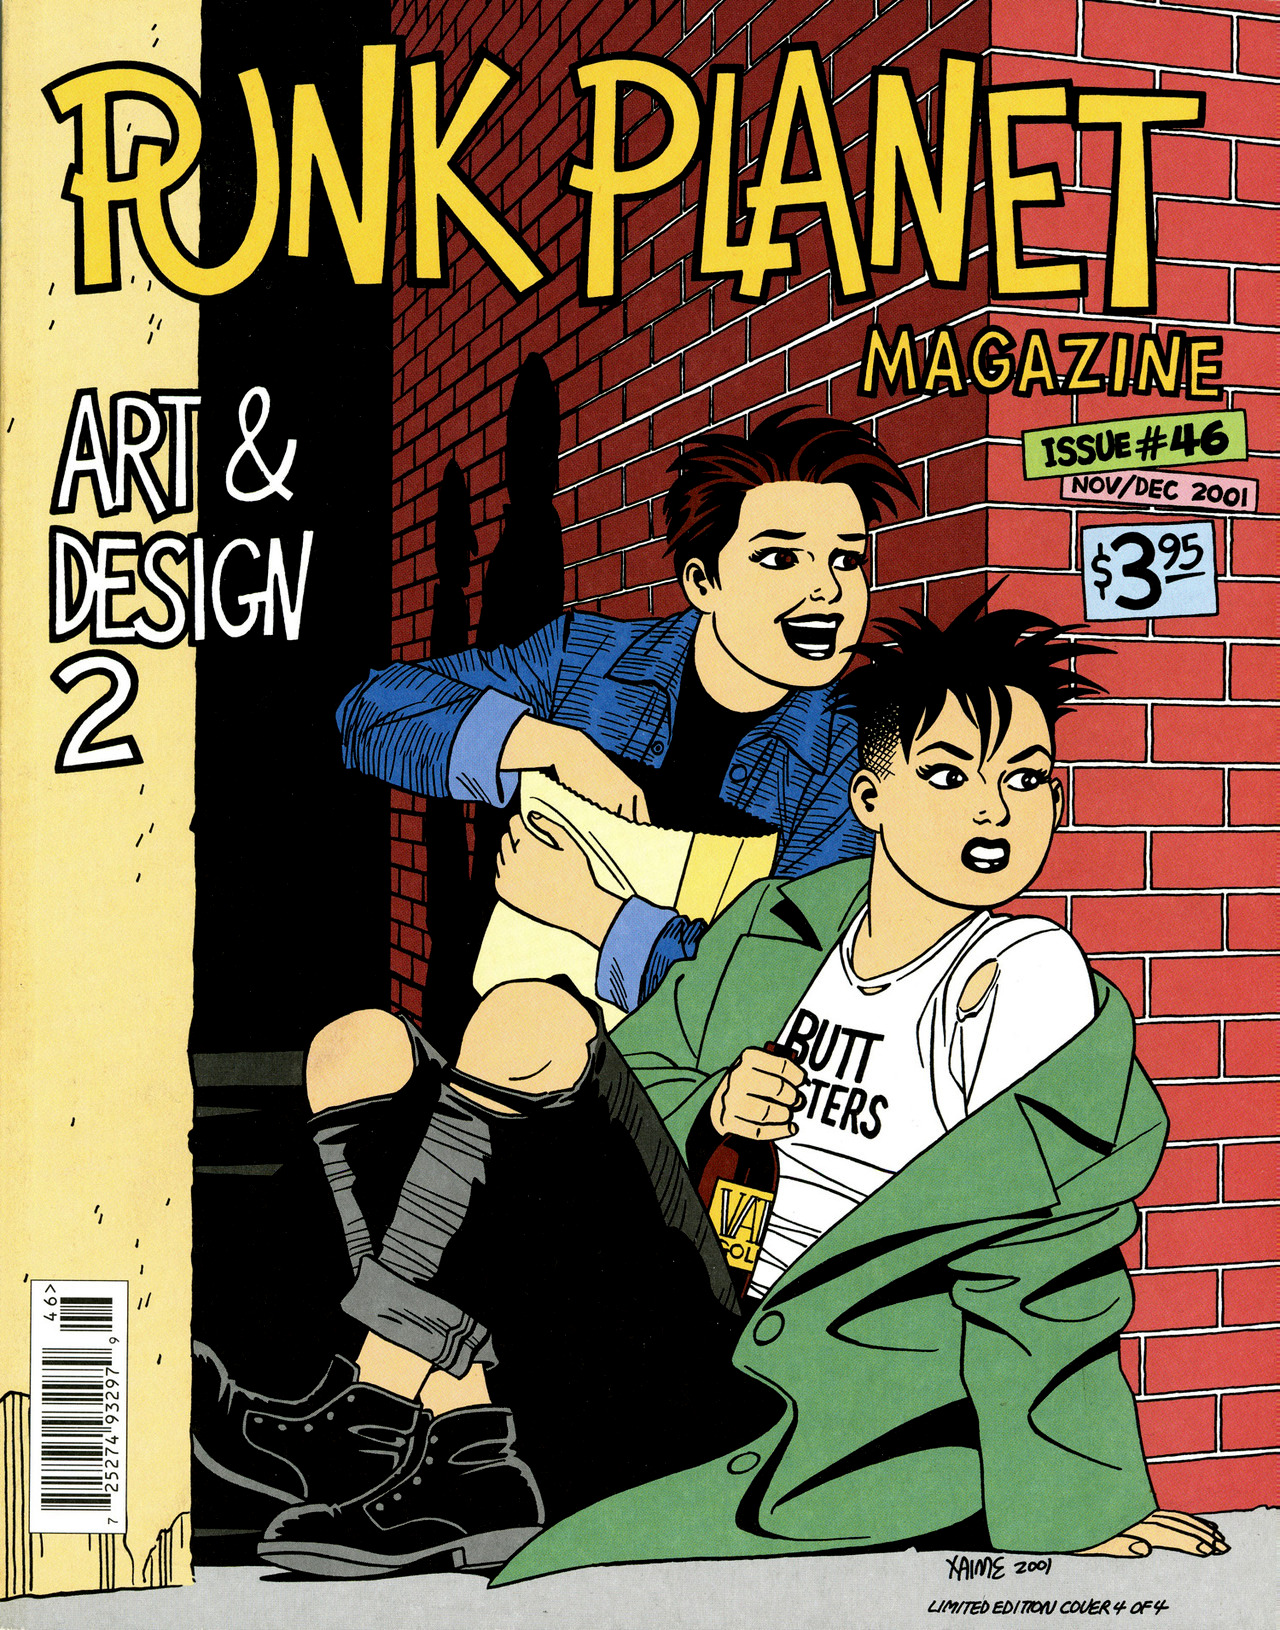 Punk Planet Magazine nº 46, 2001, capa de Jaime Hernandez com Maggie e Hopey da série Love and Rockets